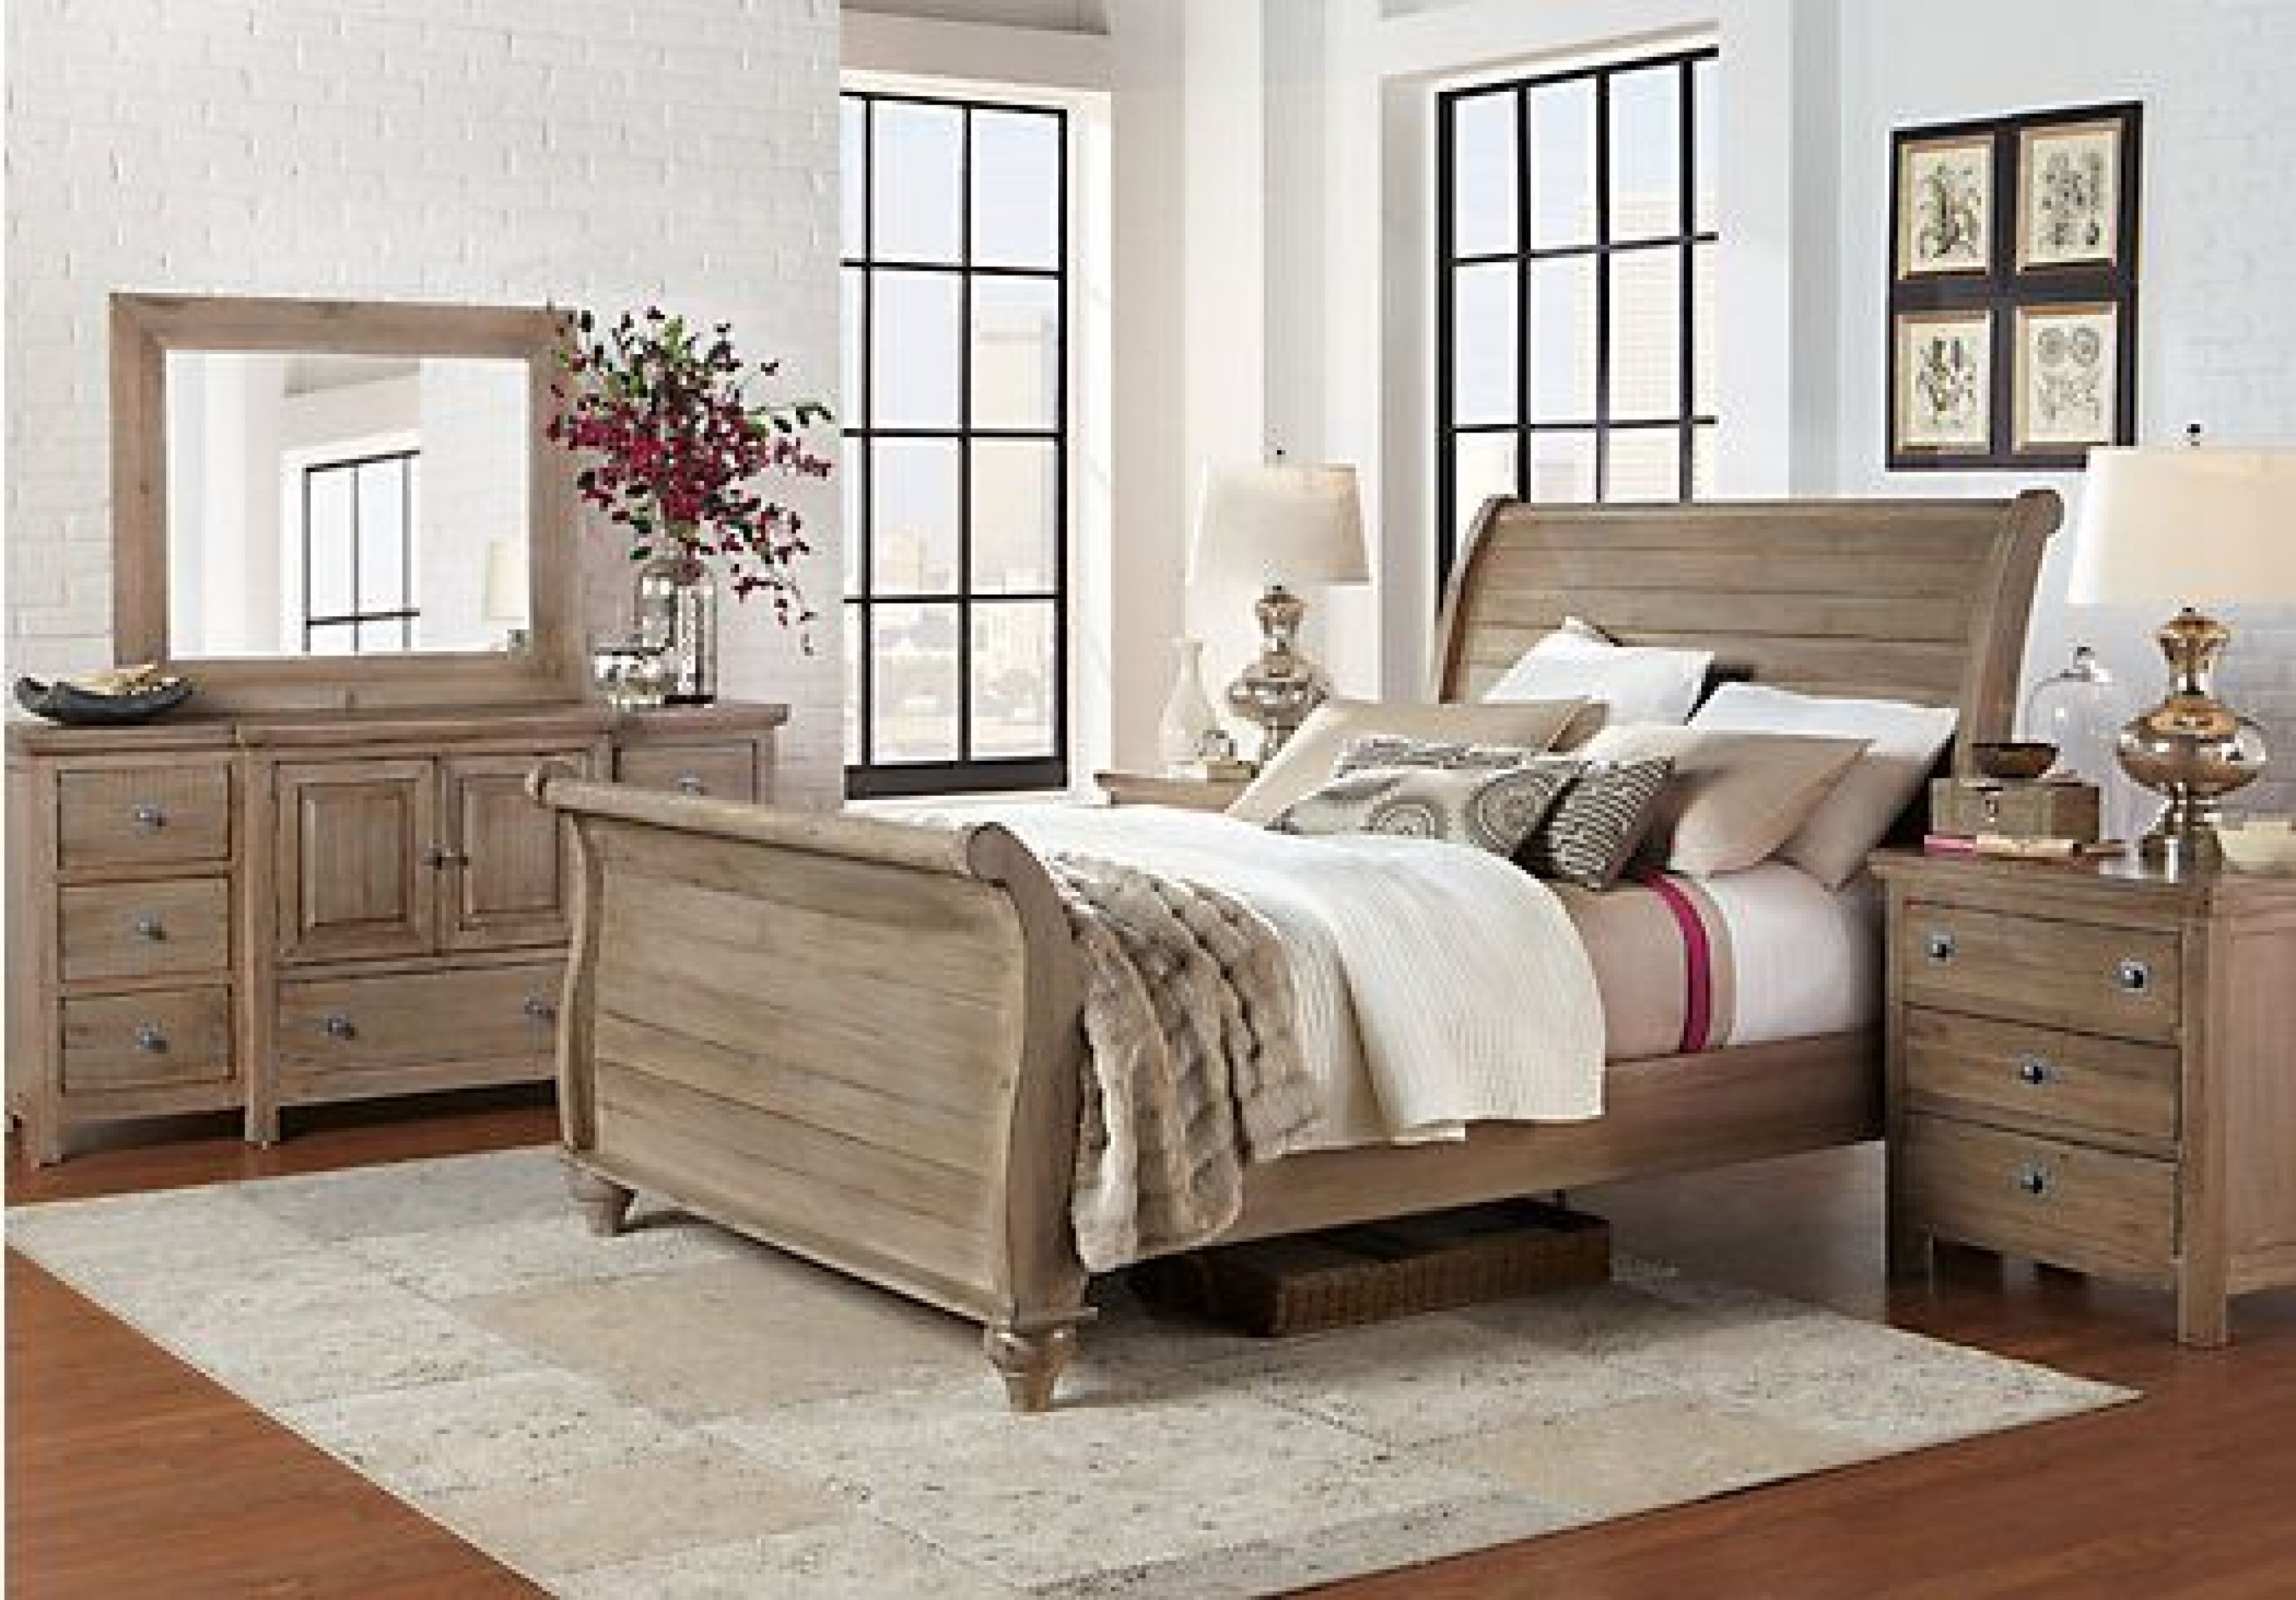 13 Suggestions Room To Go Bedroom Sets Should be   Rooms ...